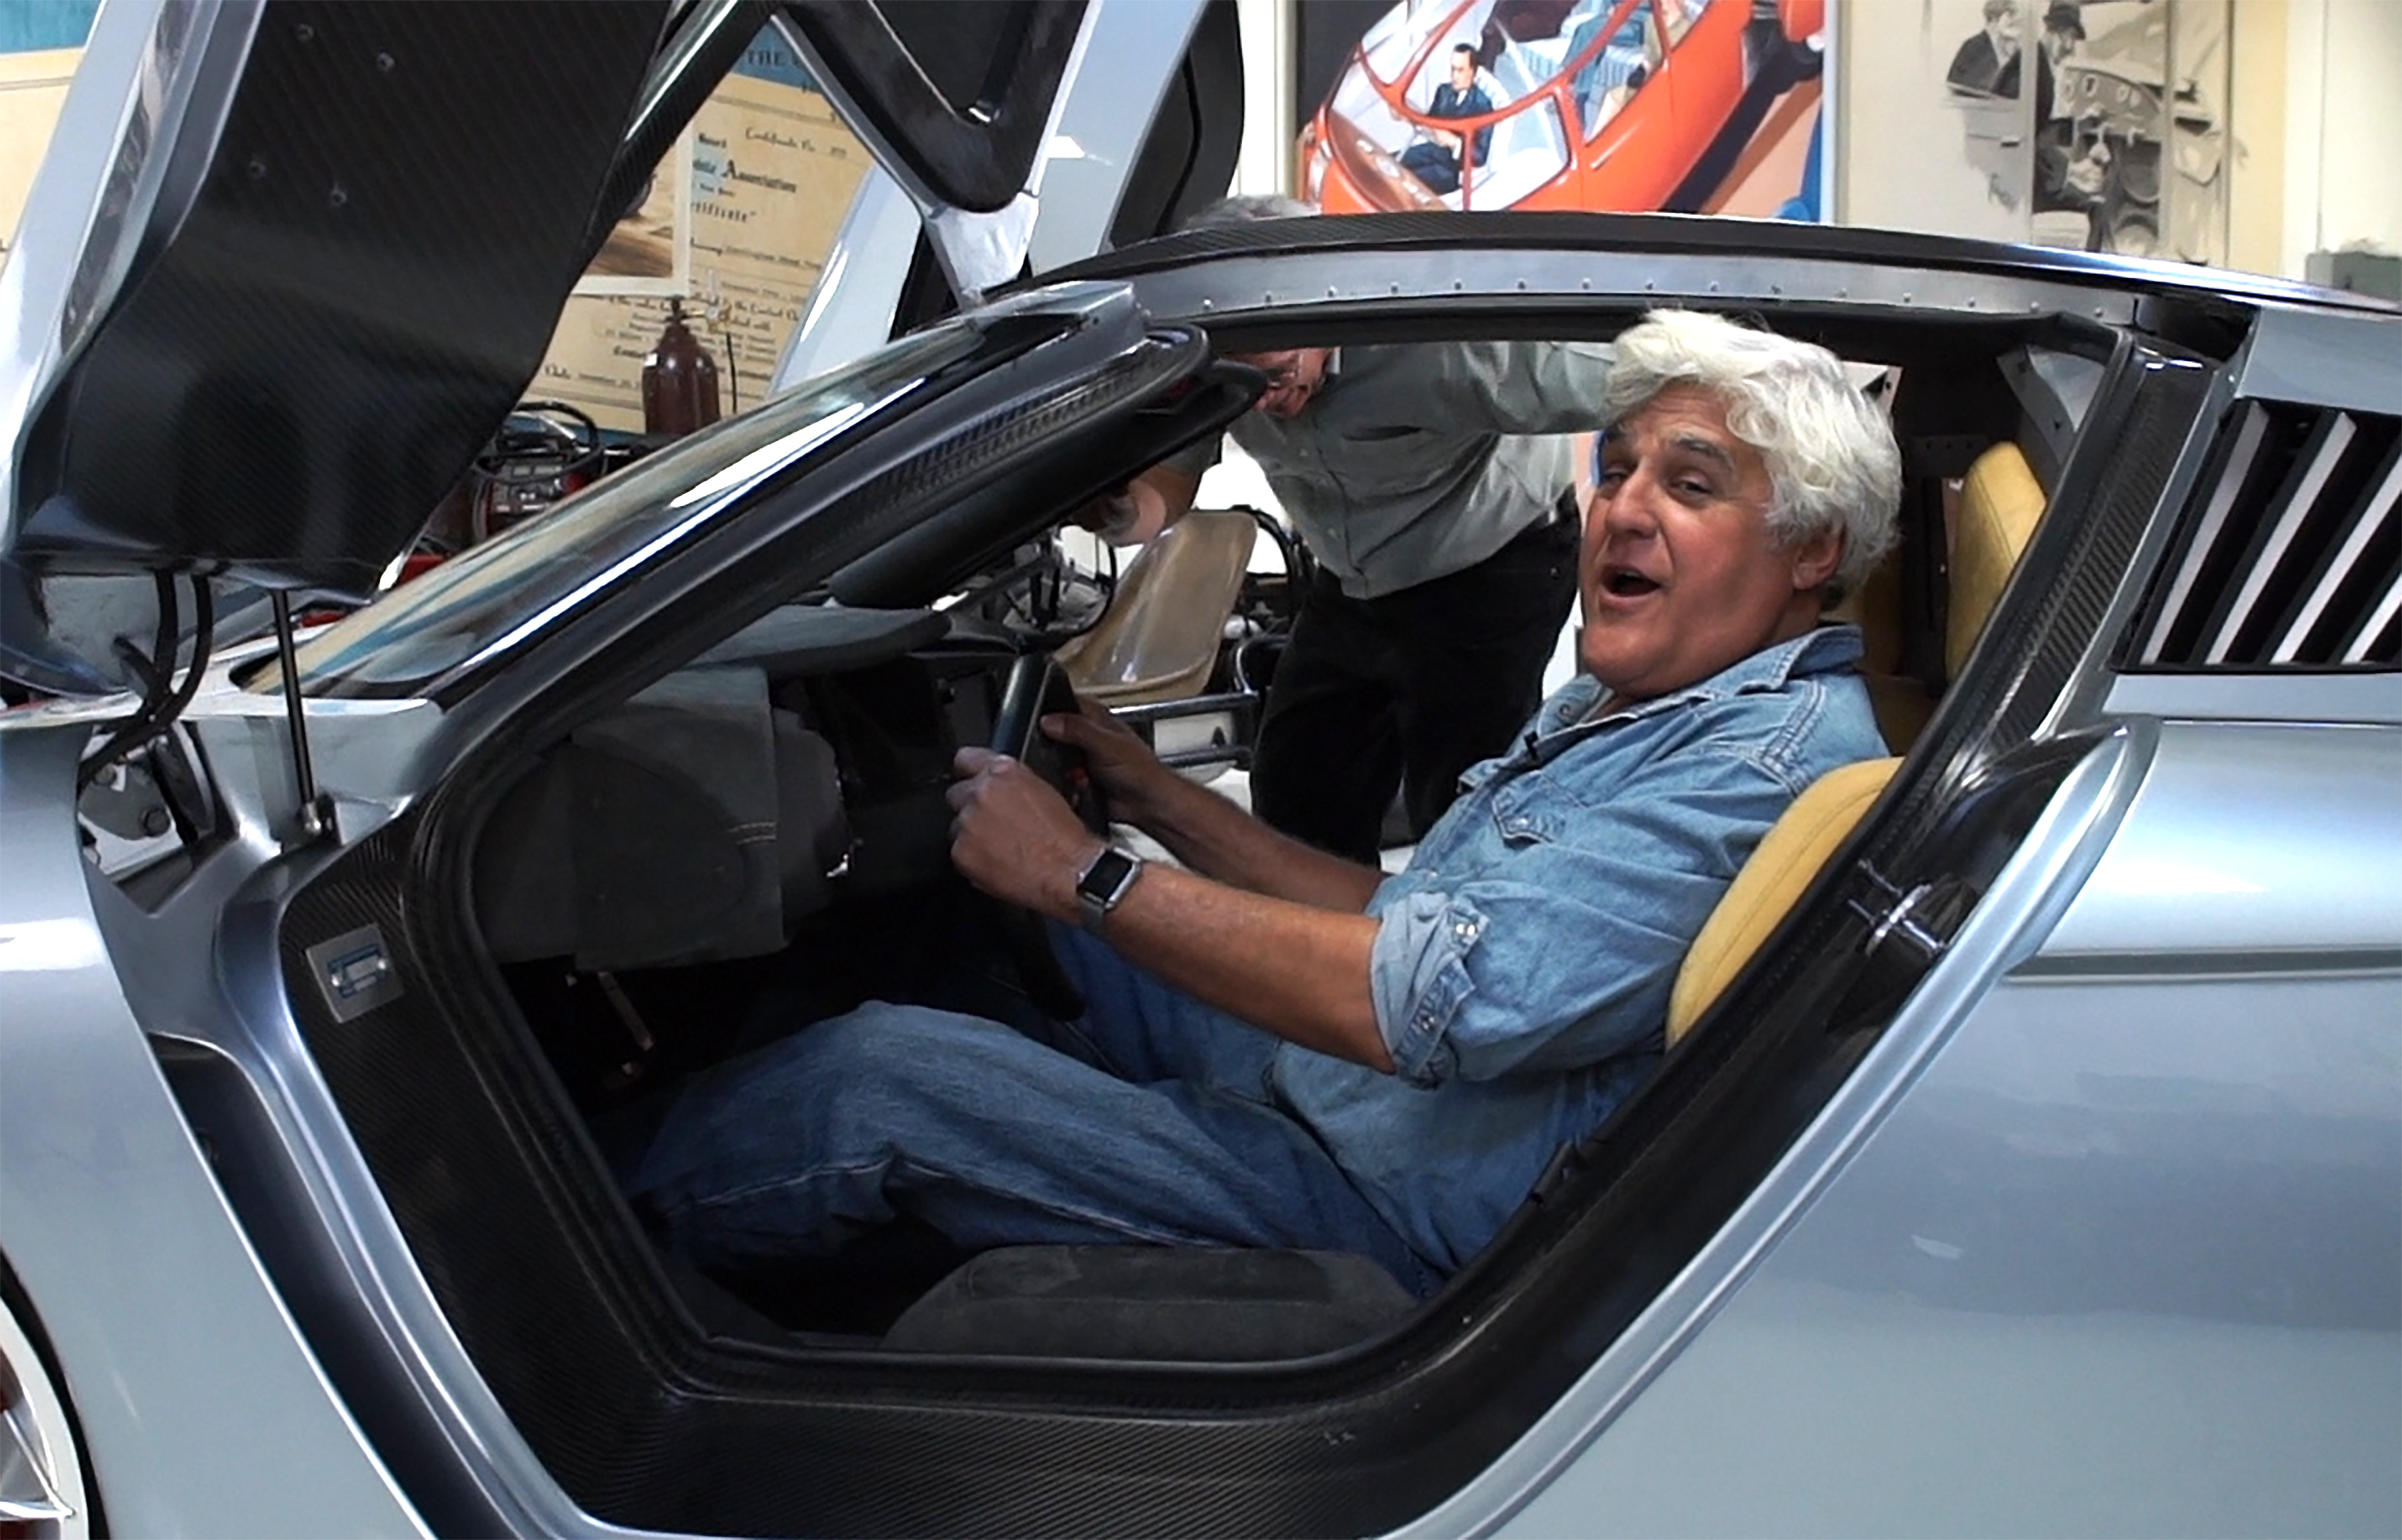 jay_leno_ecojet_3d_printing_and_scanning